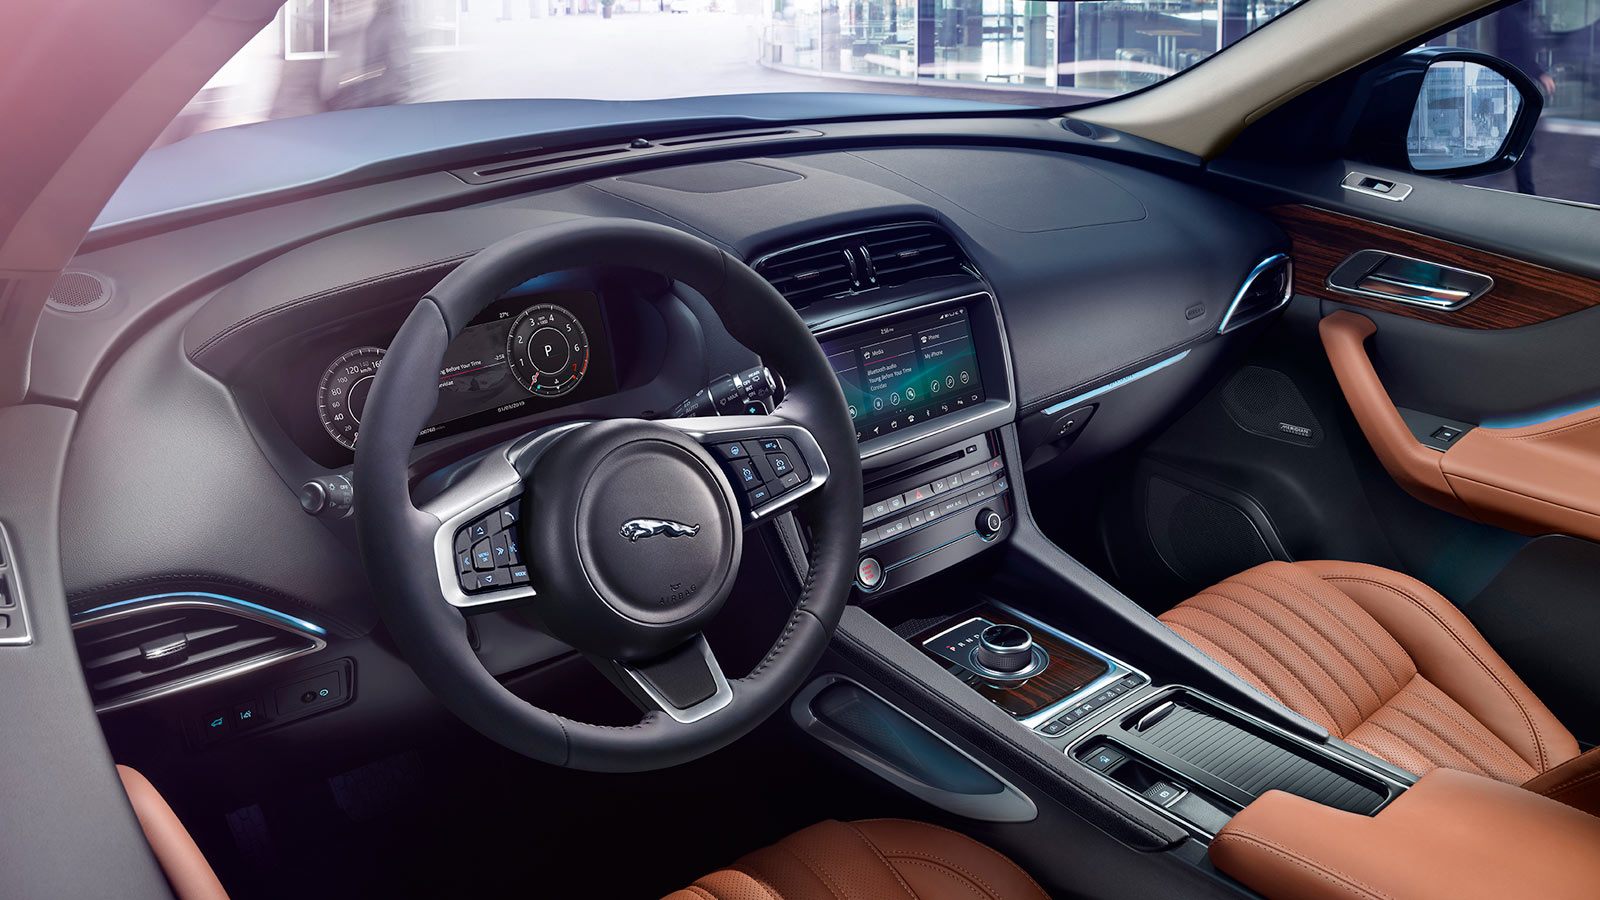 Interieur E Pace Jaguar Jaguar F Pace Interior Design Luxury Suv